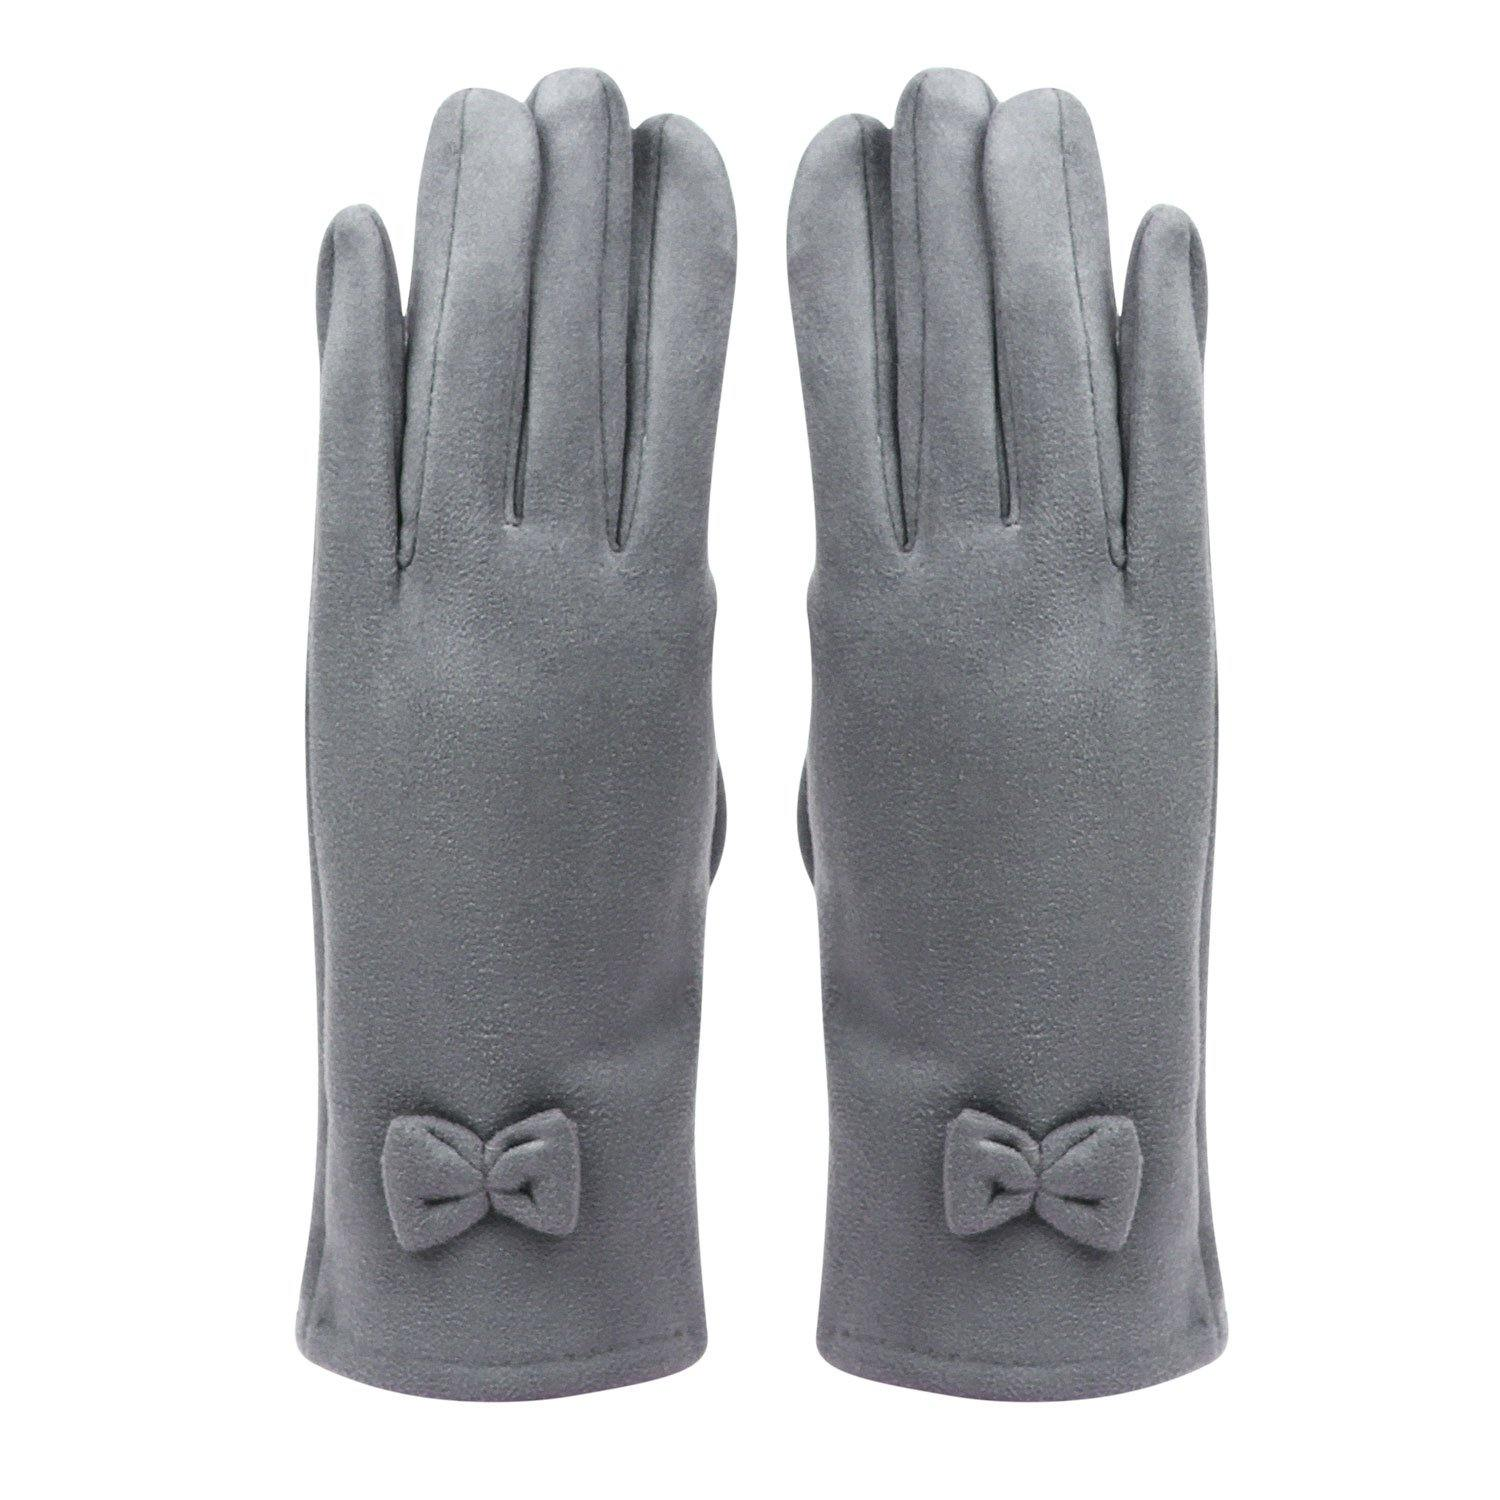 Fashionable Bow Pattern Winter Gloves for Women- Light Grey